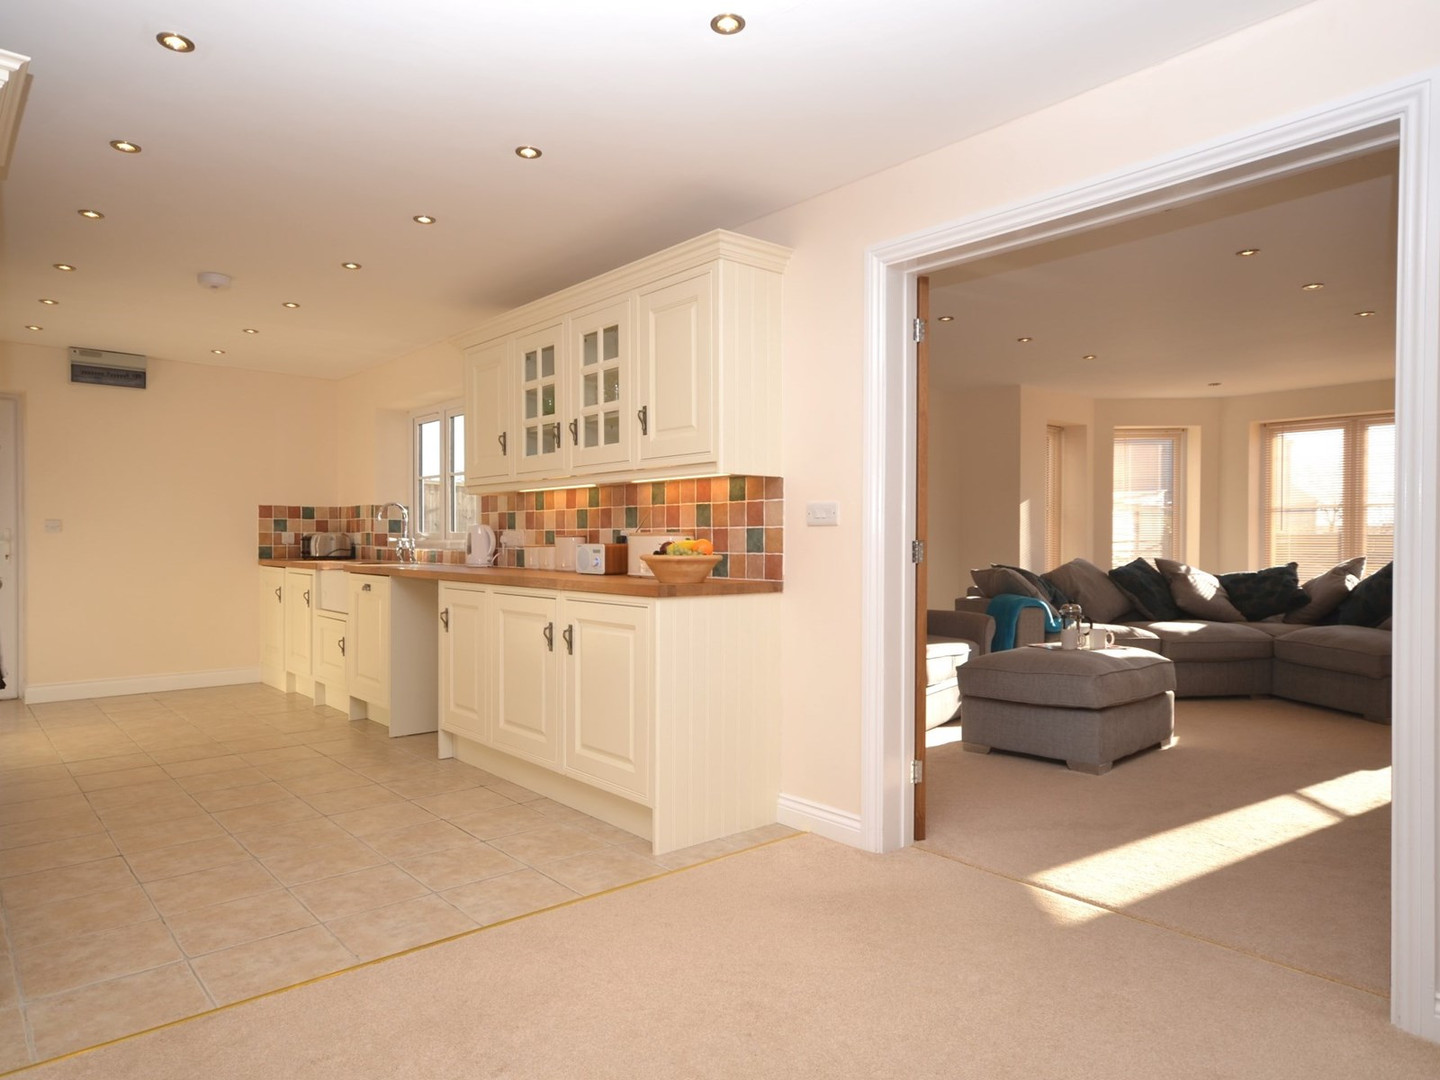 Birch View at Meare - kitchen area.jpeg